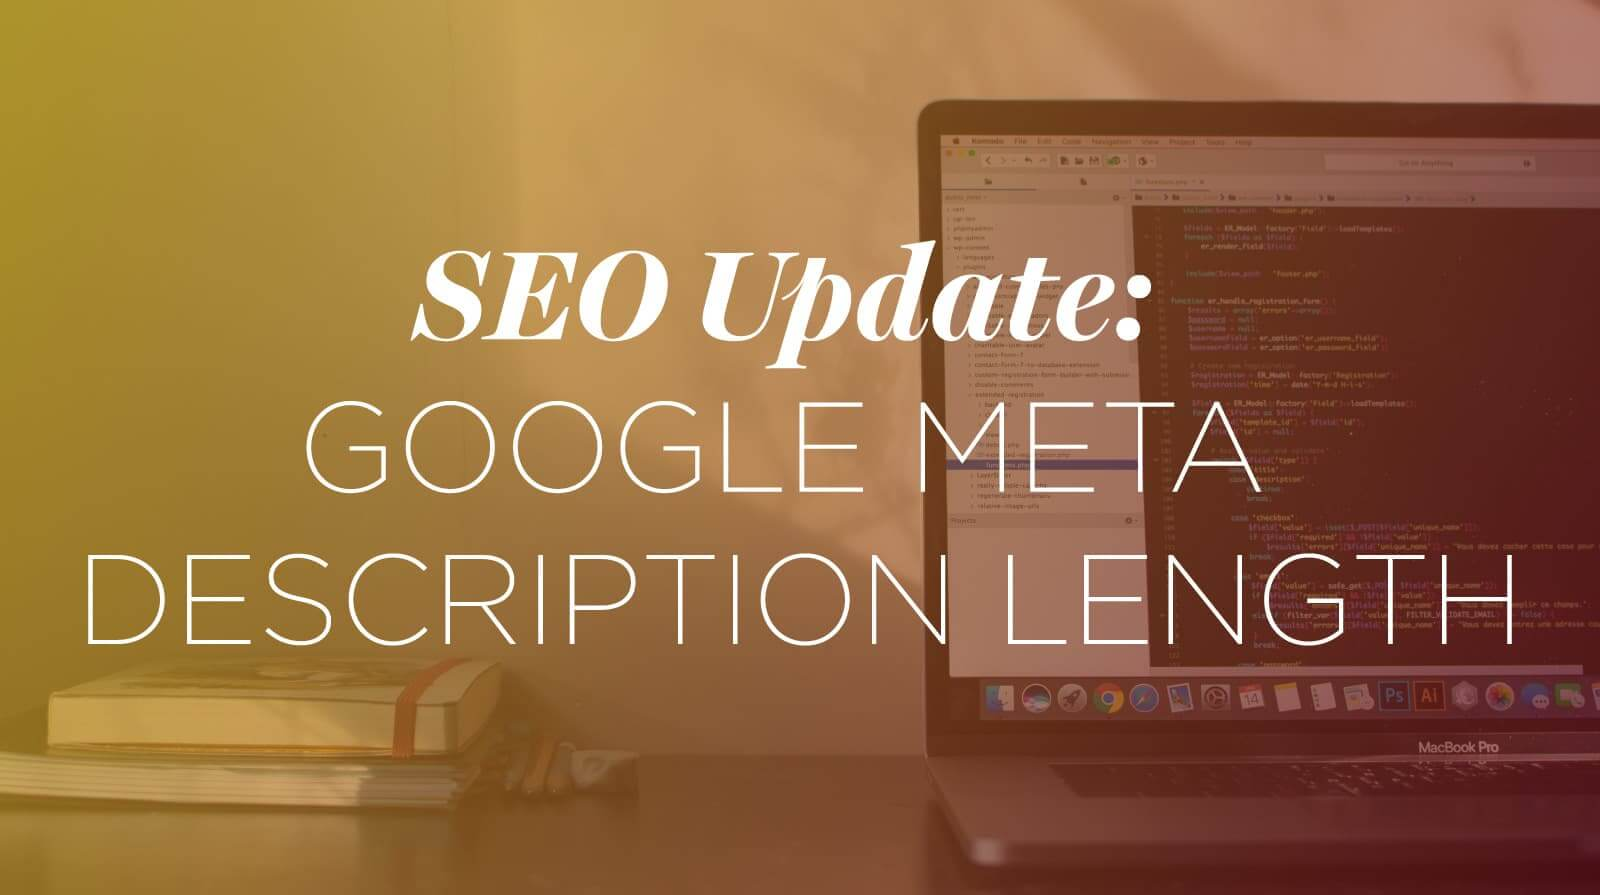 SEO Update Google Meta Description Length